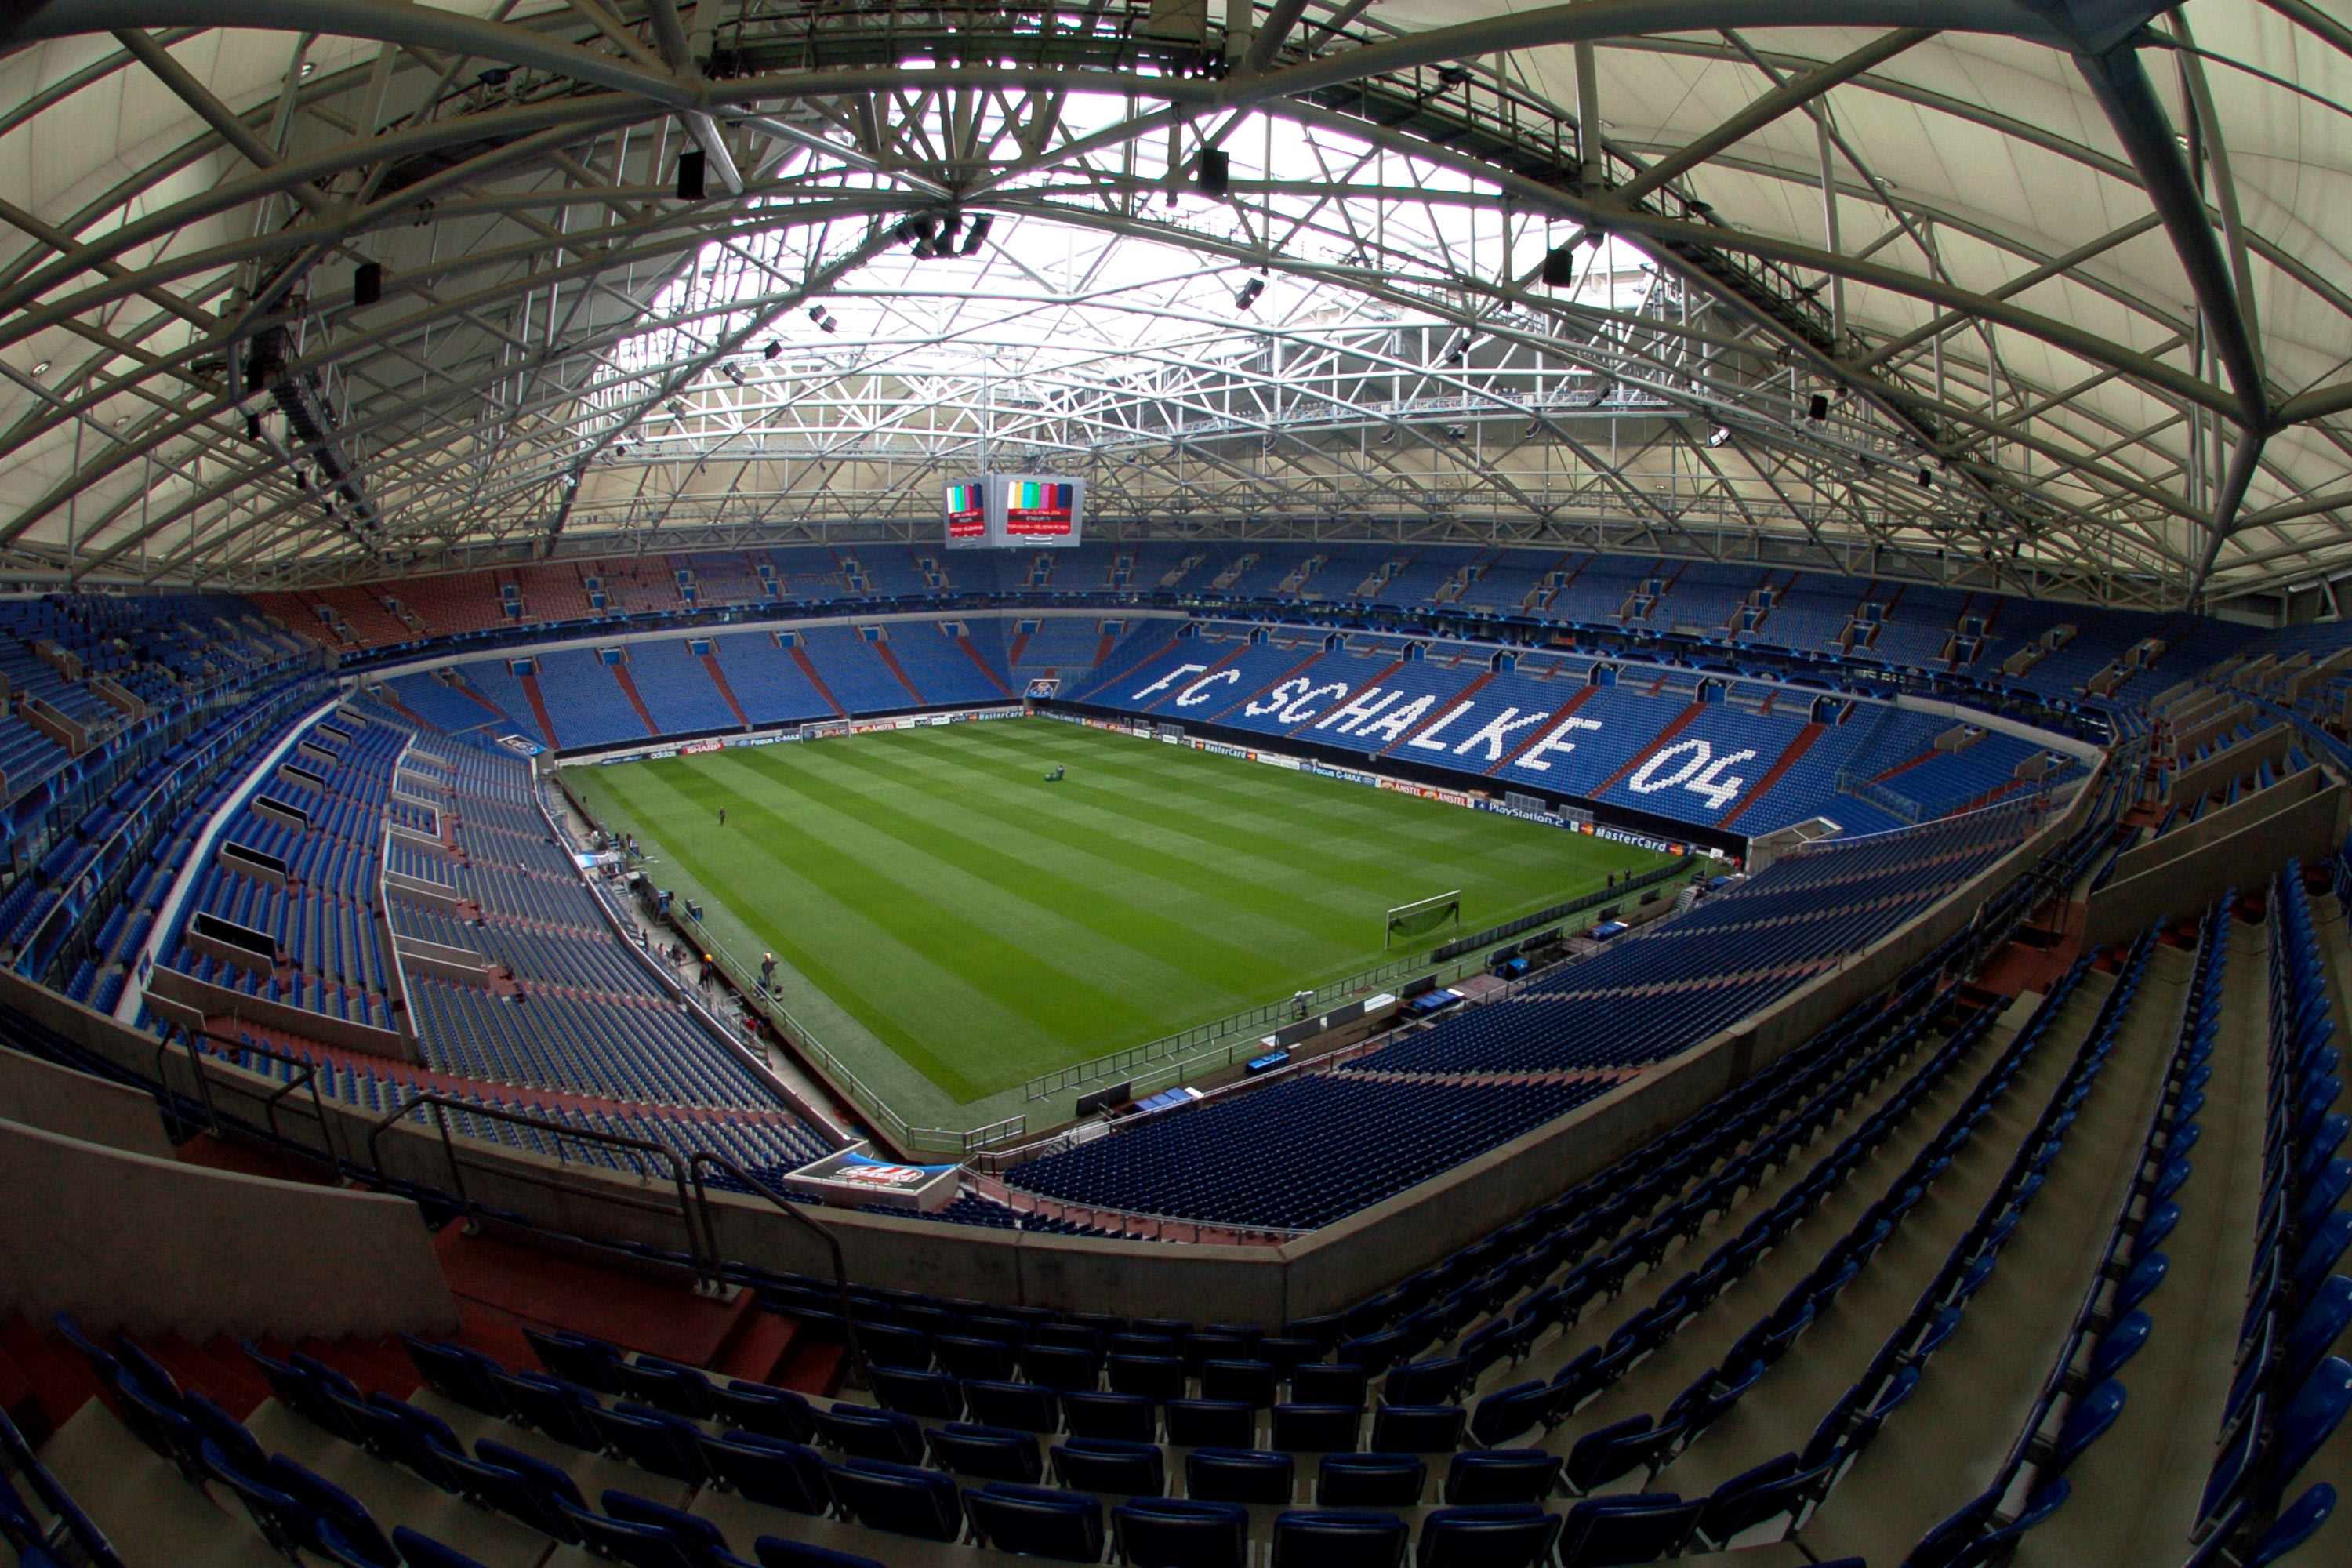 The World S Most Extraordinary Stadiums Lebs295